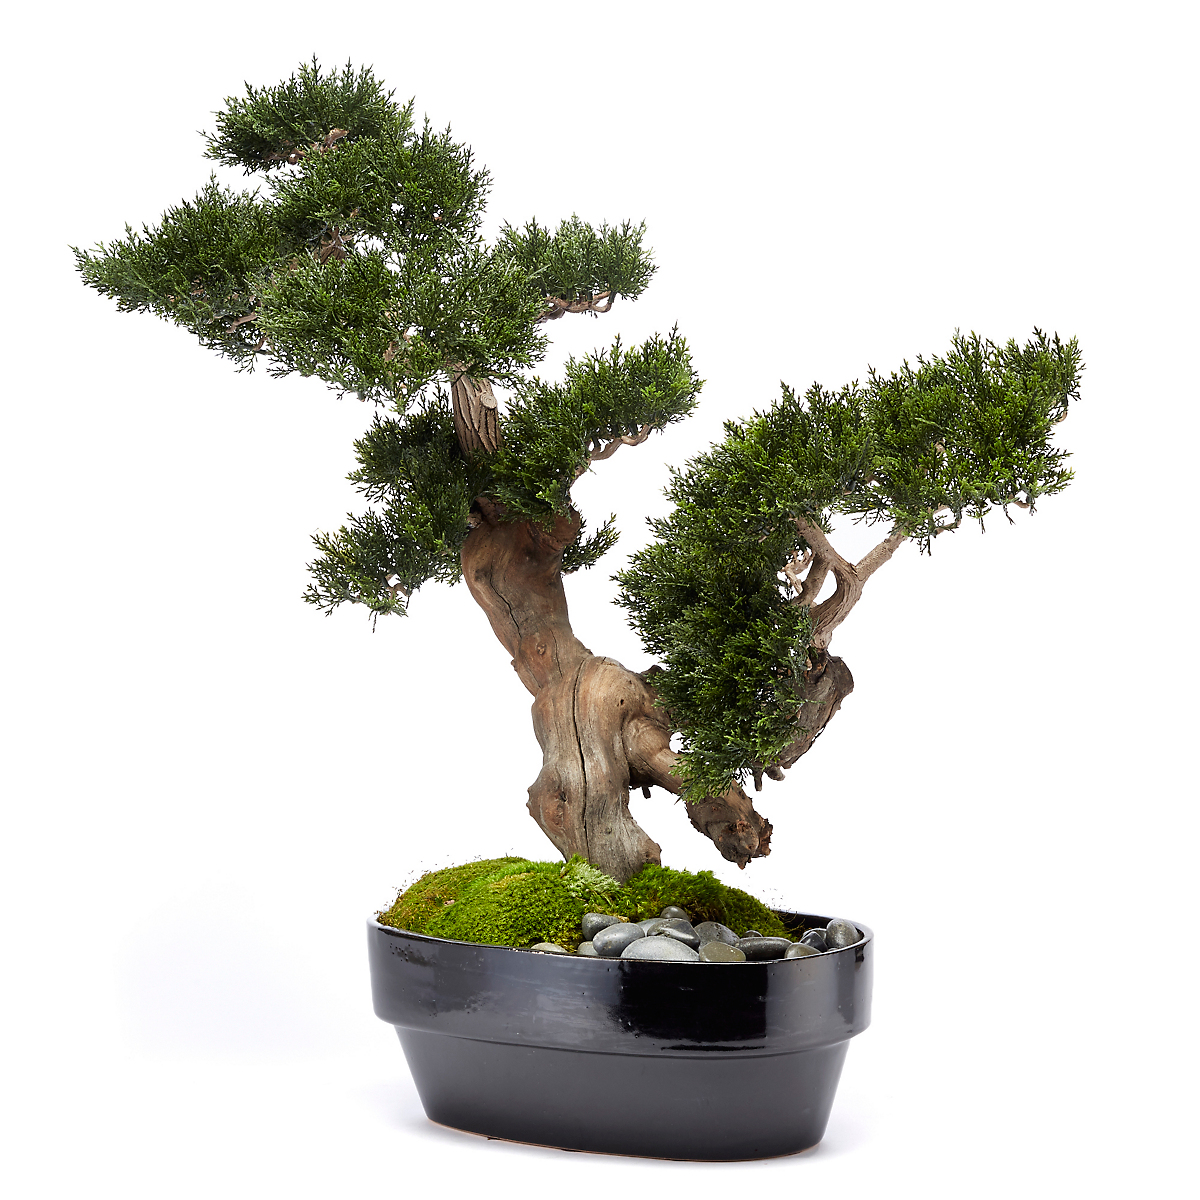 Moyogi Bonsai